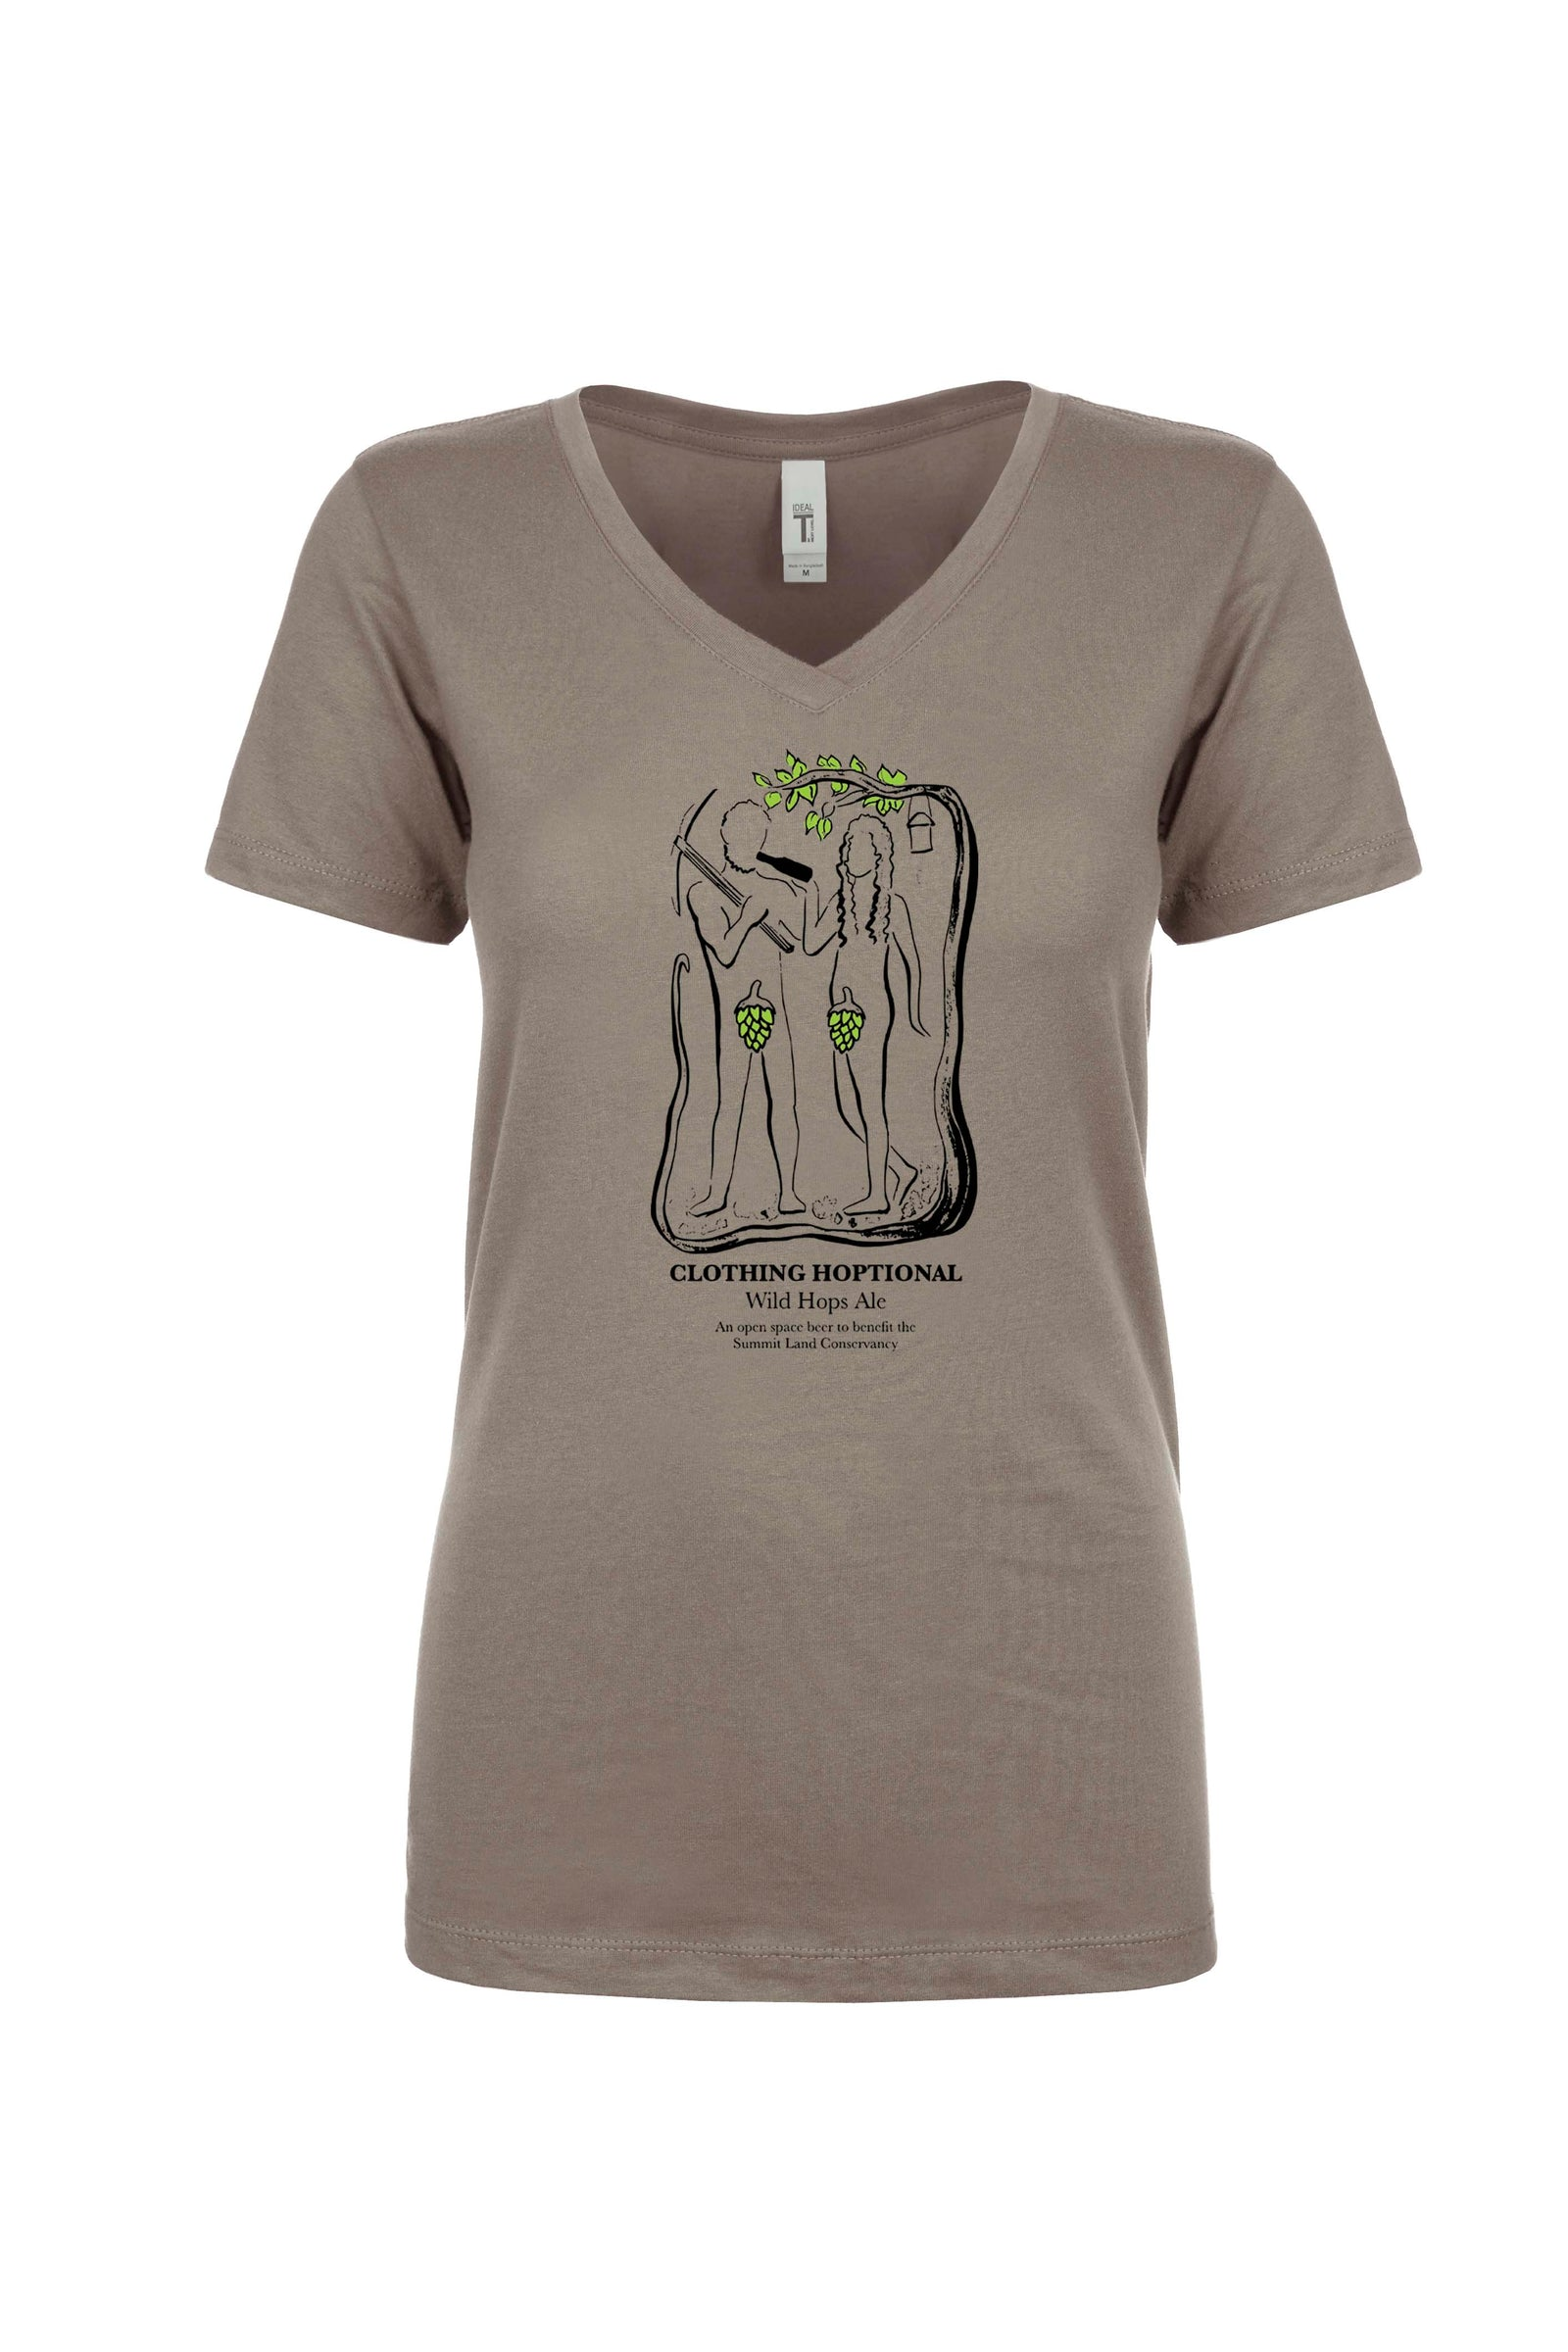 Summit Land Conservancy Clothing Hoptional Ladies Tshirt